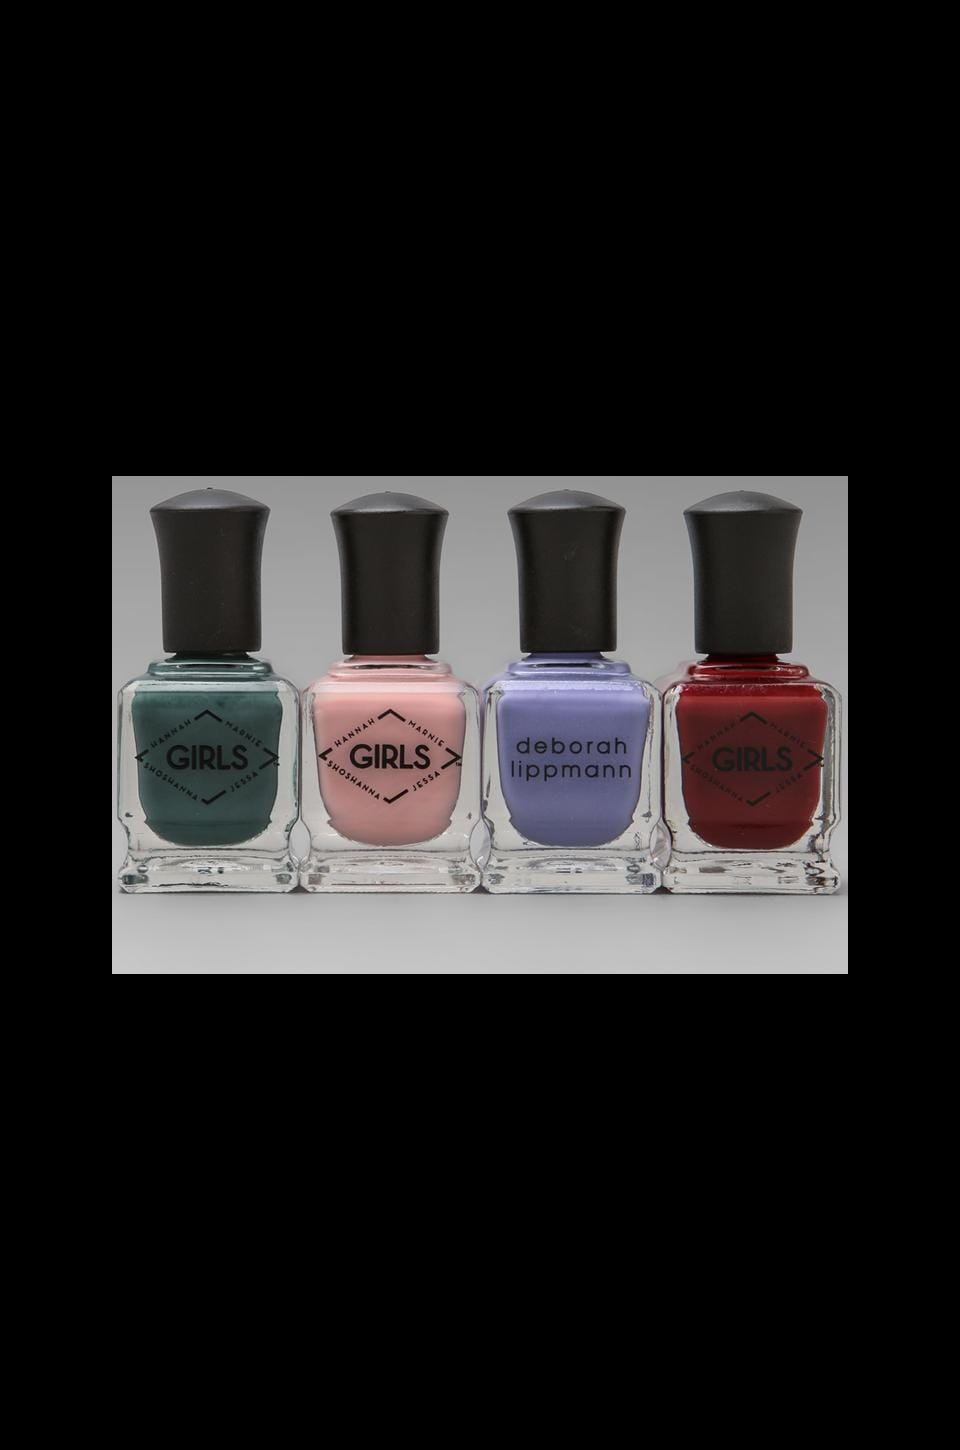 Deborah Lippmann LIMITED EDITION Girls Lacquer Set